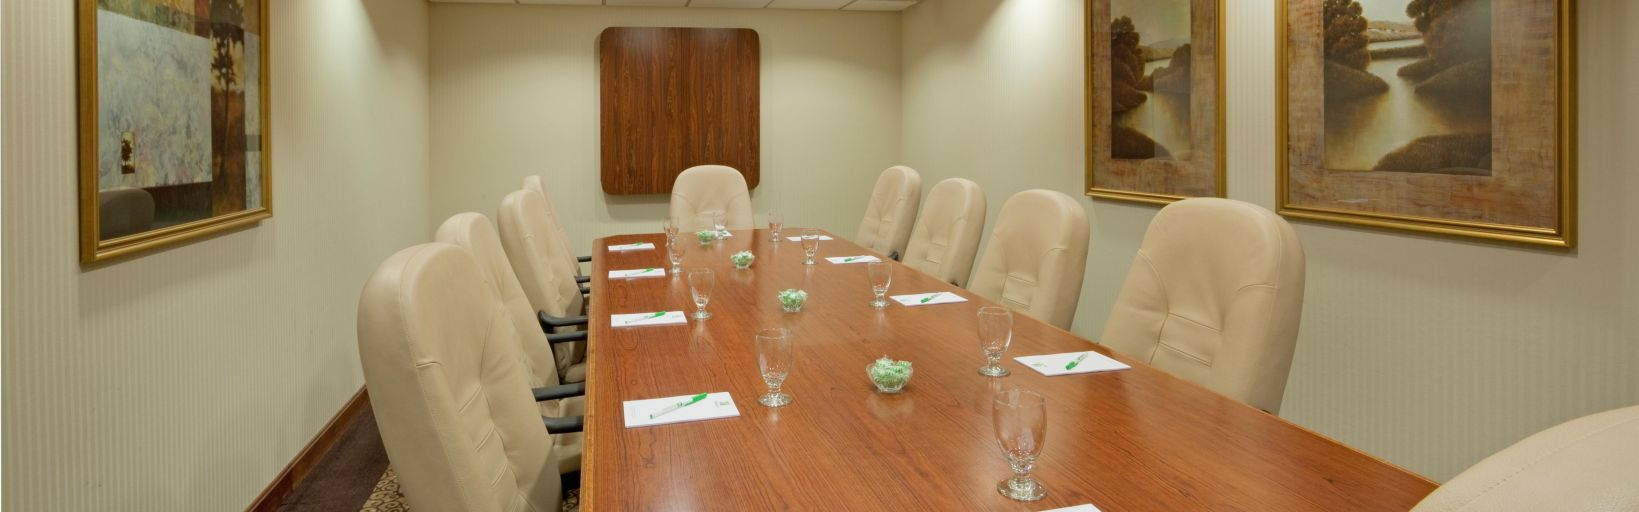 Holiday Inn Portsmouth Hotel Groups Meeting Rooms Available